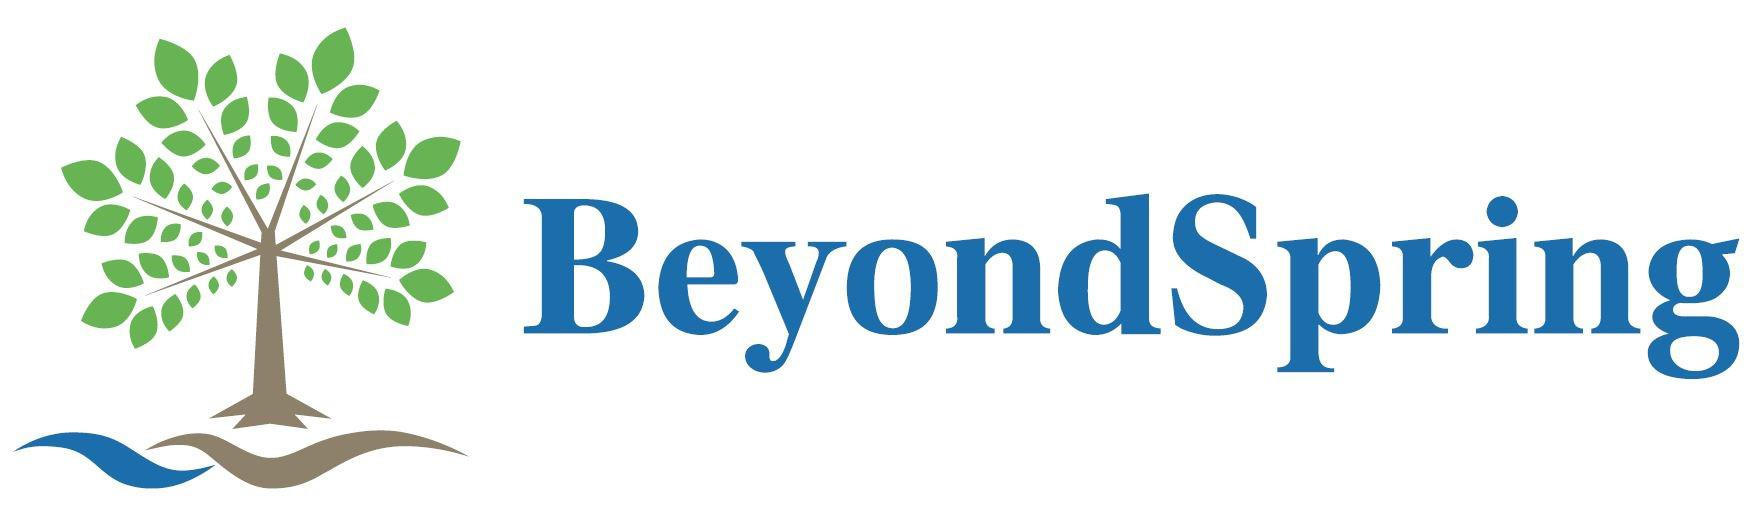 BeyondSpring Announces Positive Topline Results from its DUBLIN-3 Registrational Trial of Plinabulin in Combination with Docetaxel for the Treatment of 2nd/3rd Line Non-Small Cell Lung Cancer (NSCLC) with EGFR Wild Type